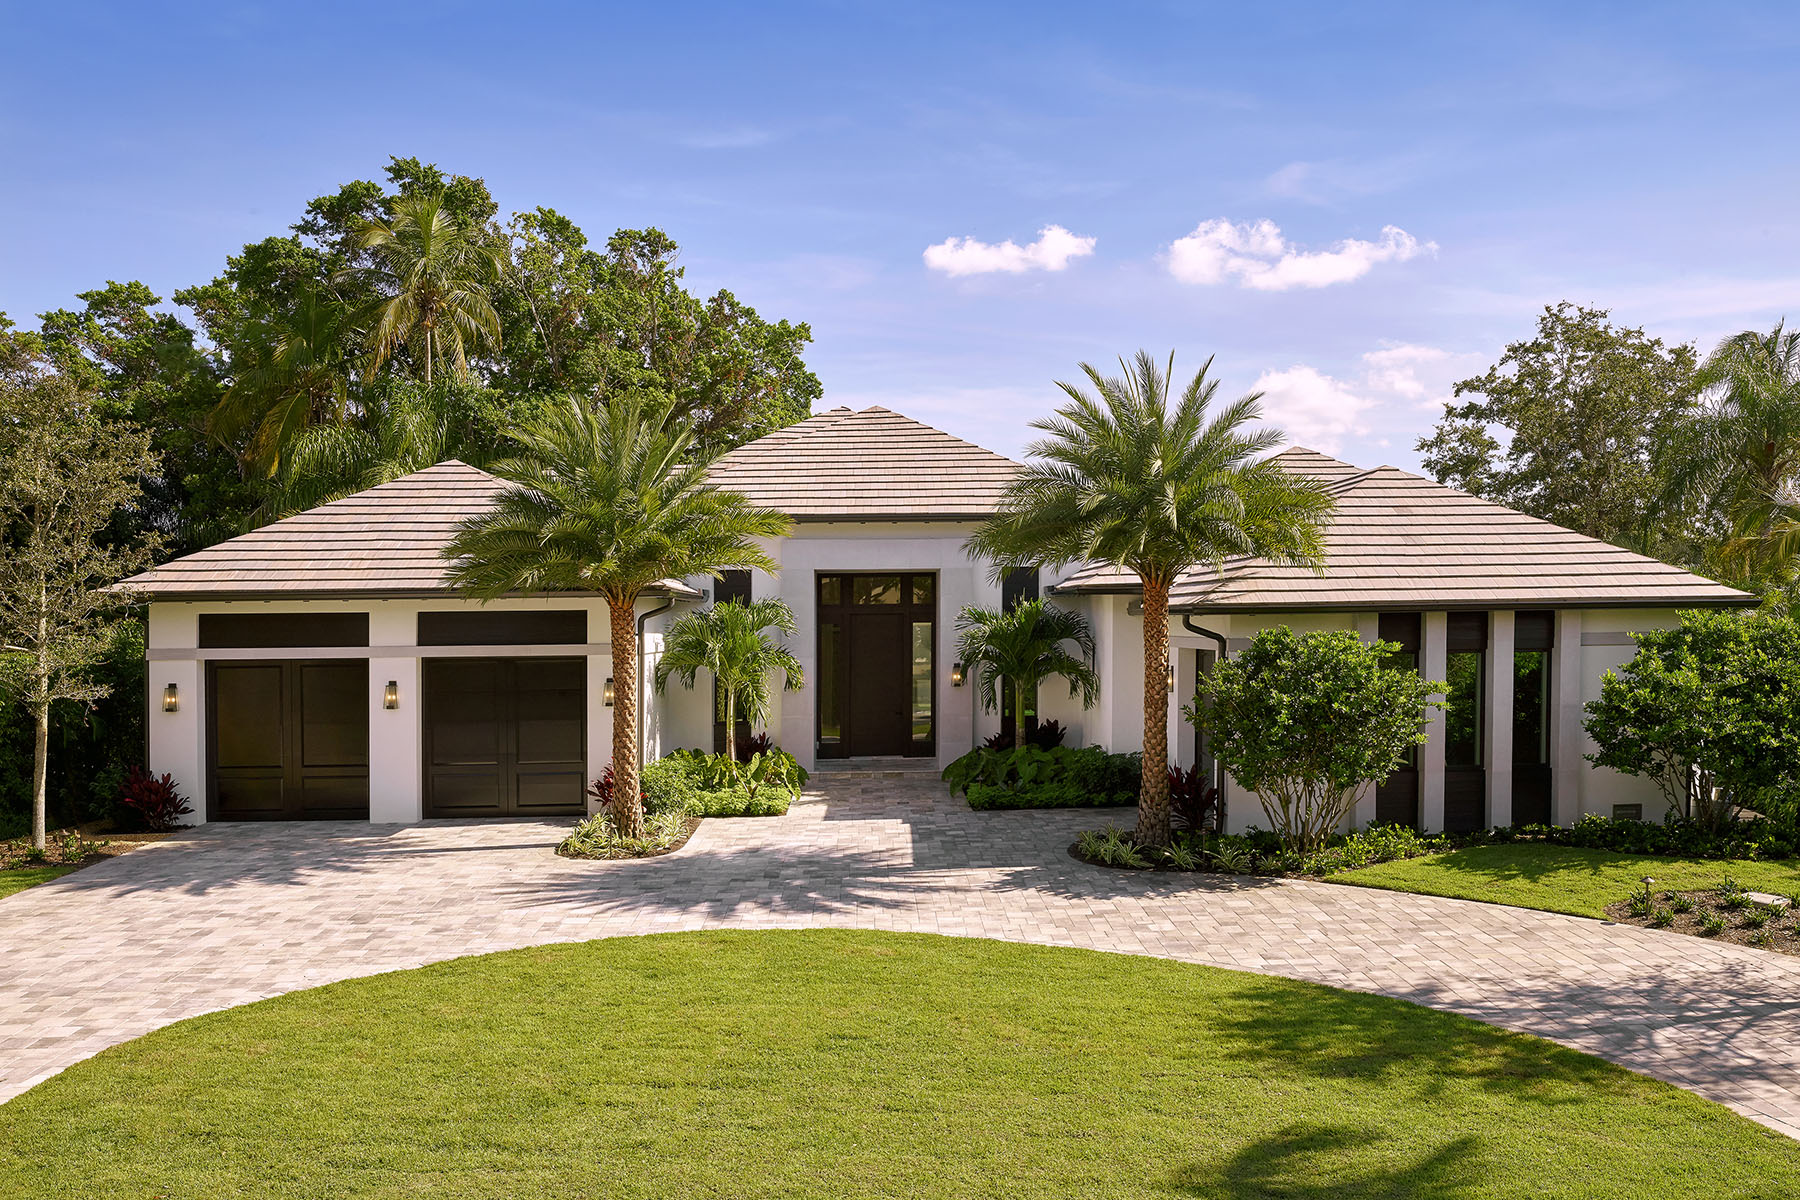 Single Family Homes for Sale at PARK SHORE 541 Whispering Pine Court Naples, Florida 34103 United States